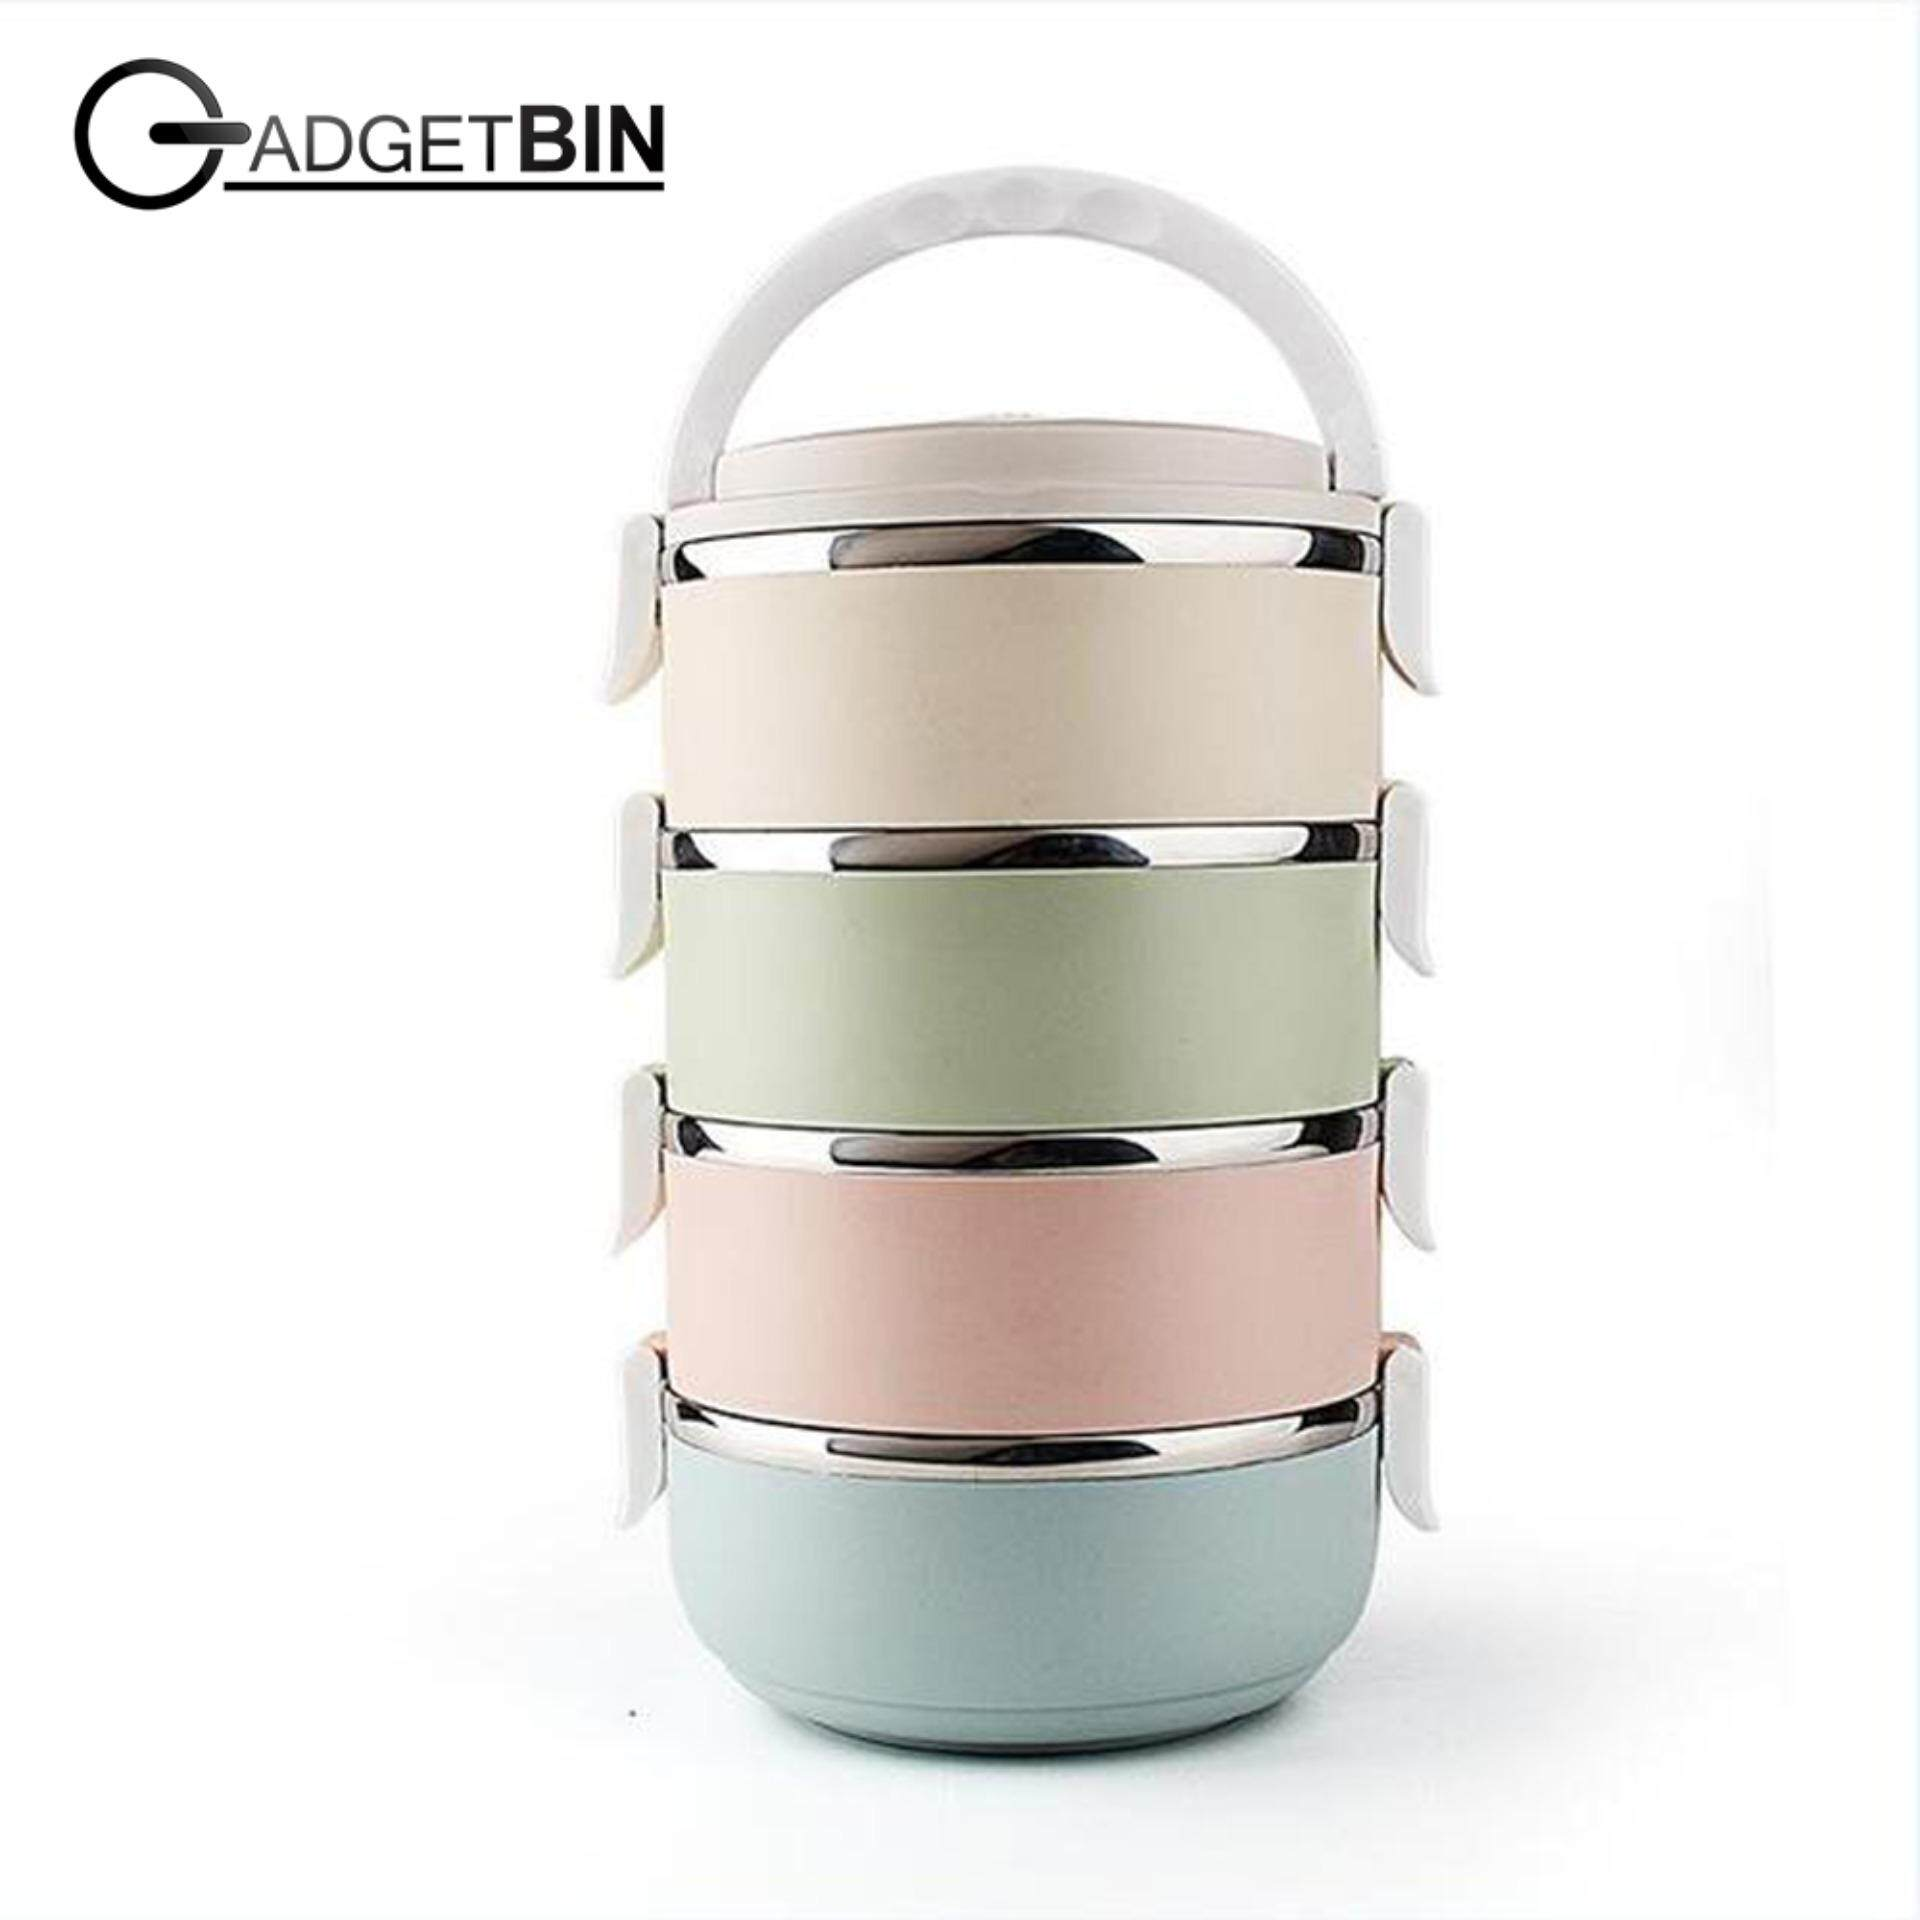 72b0552158 Home Lunch Bags   Boxes - Buy Home Lunch Bags   Boxes at Best Price ...